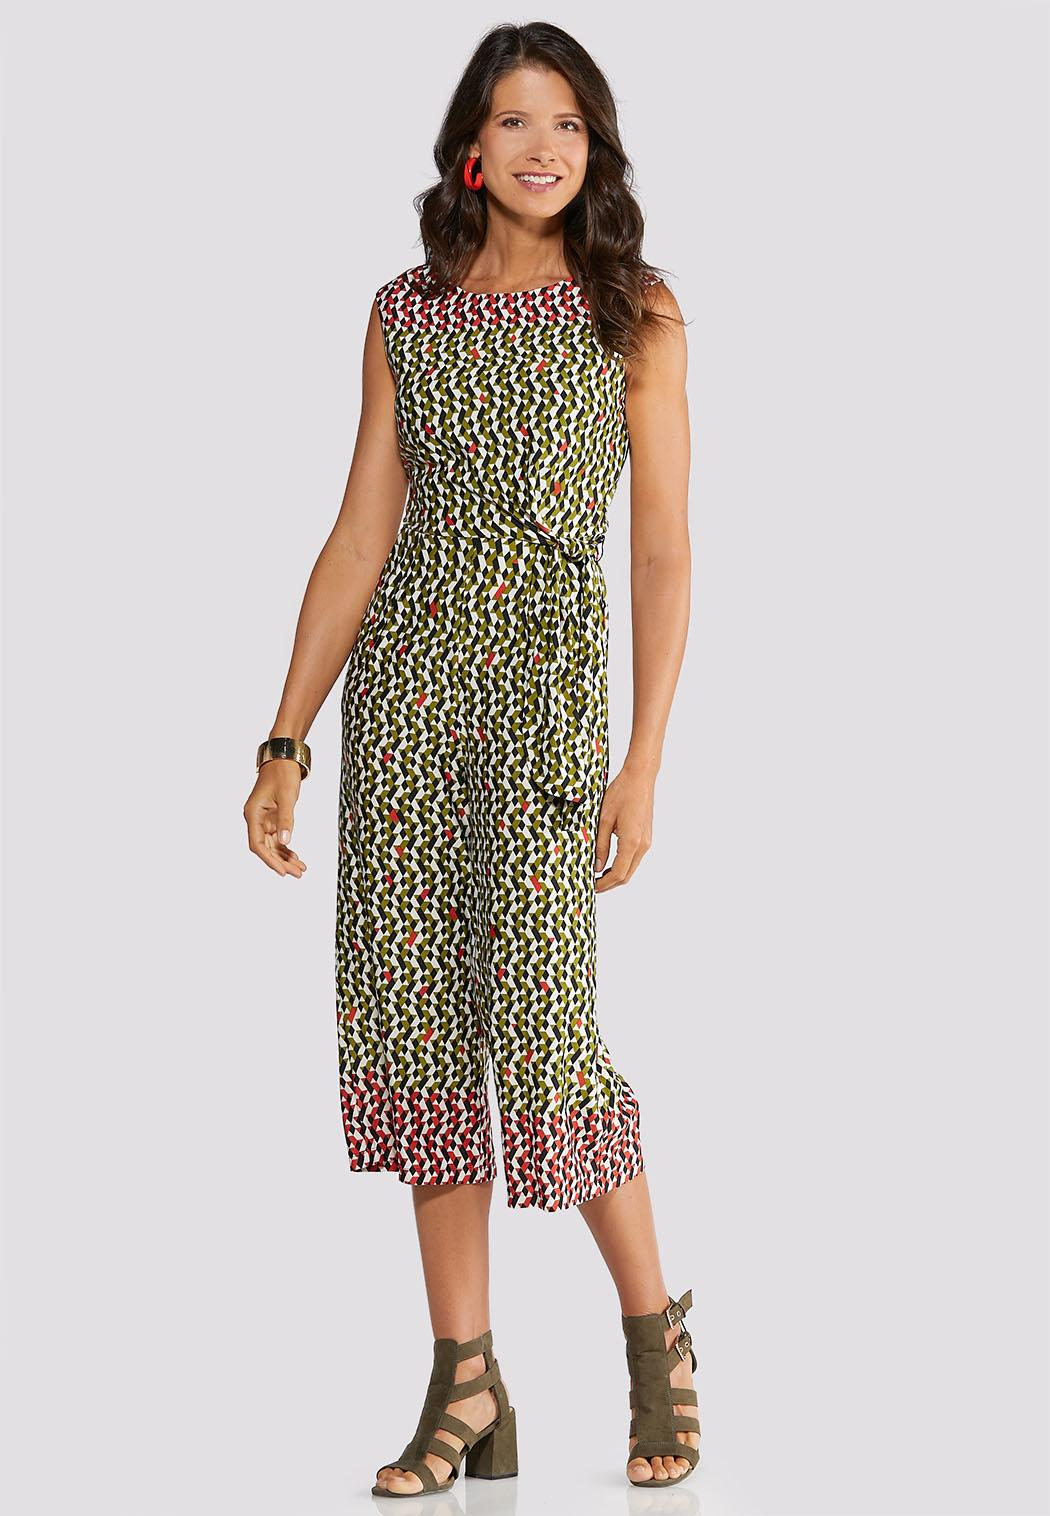 66801a3ab5f Women's Dresses- Fit and Flare, Swing, Maxi, Midi & More Affordable Dresses